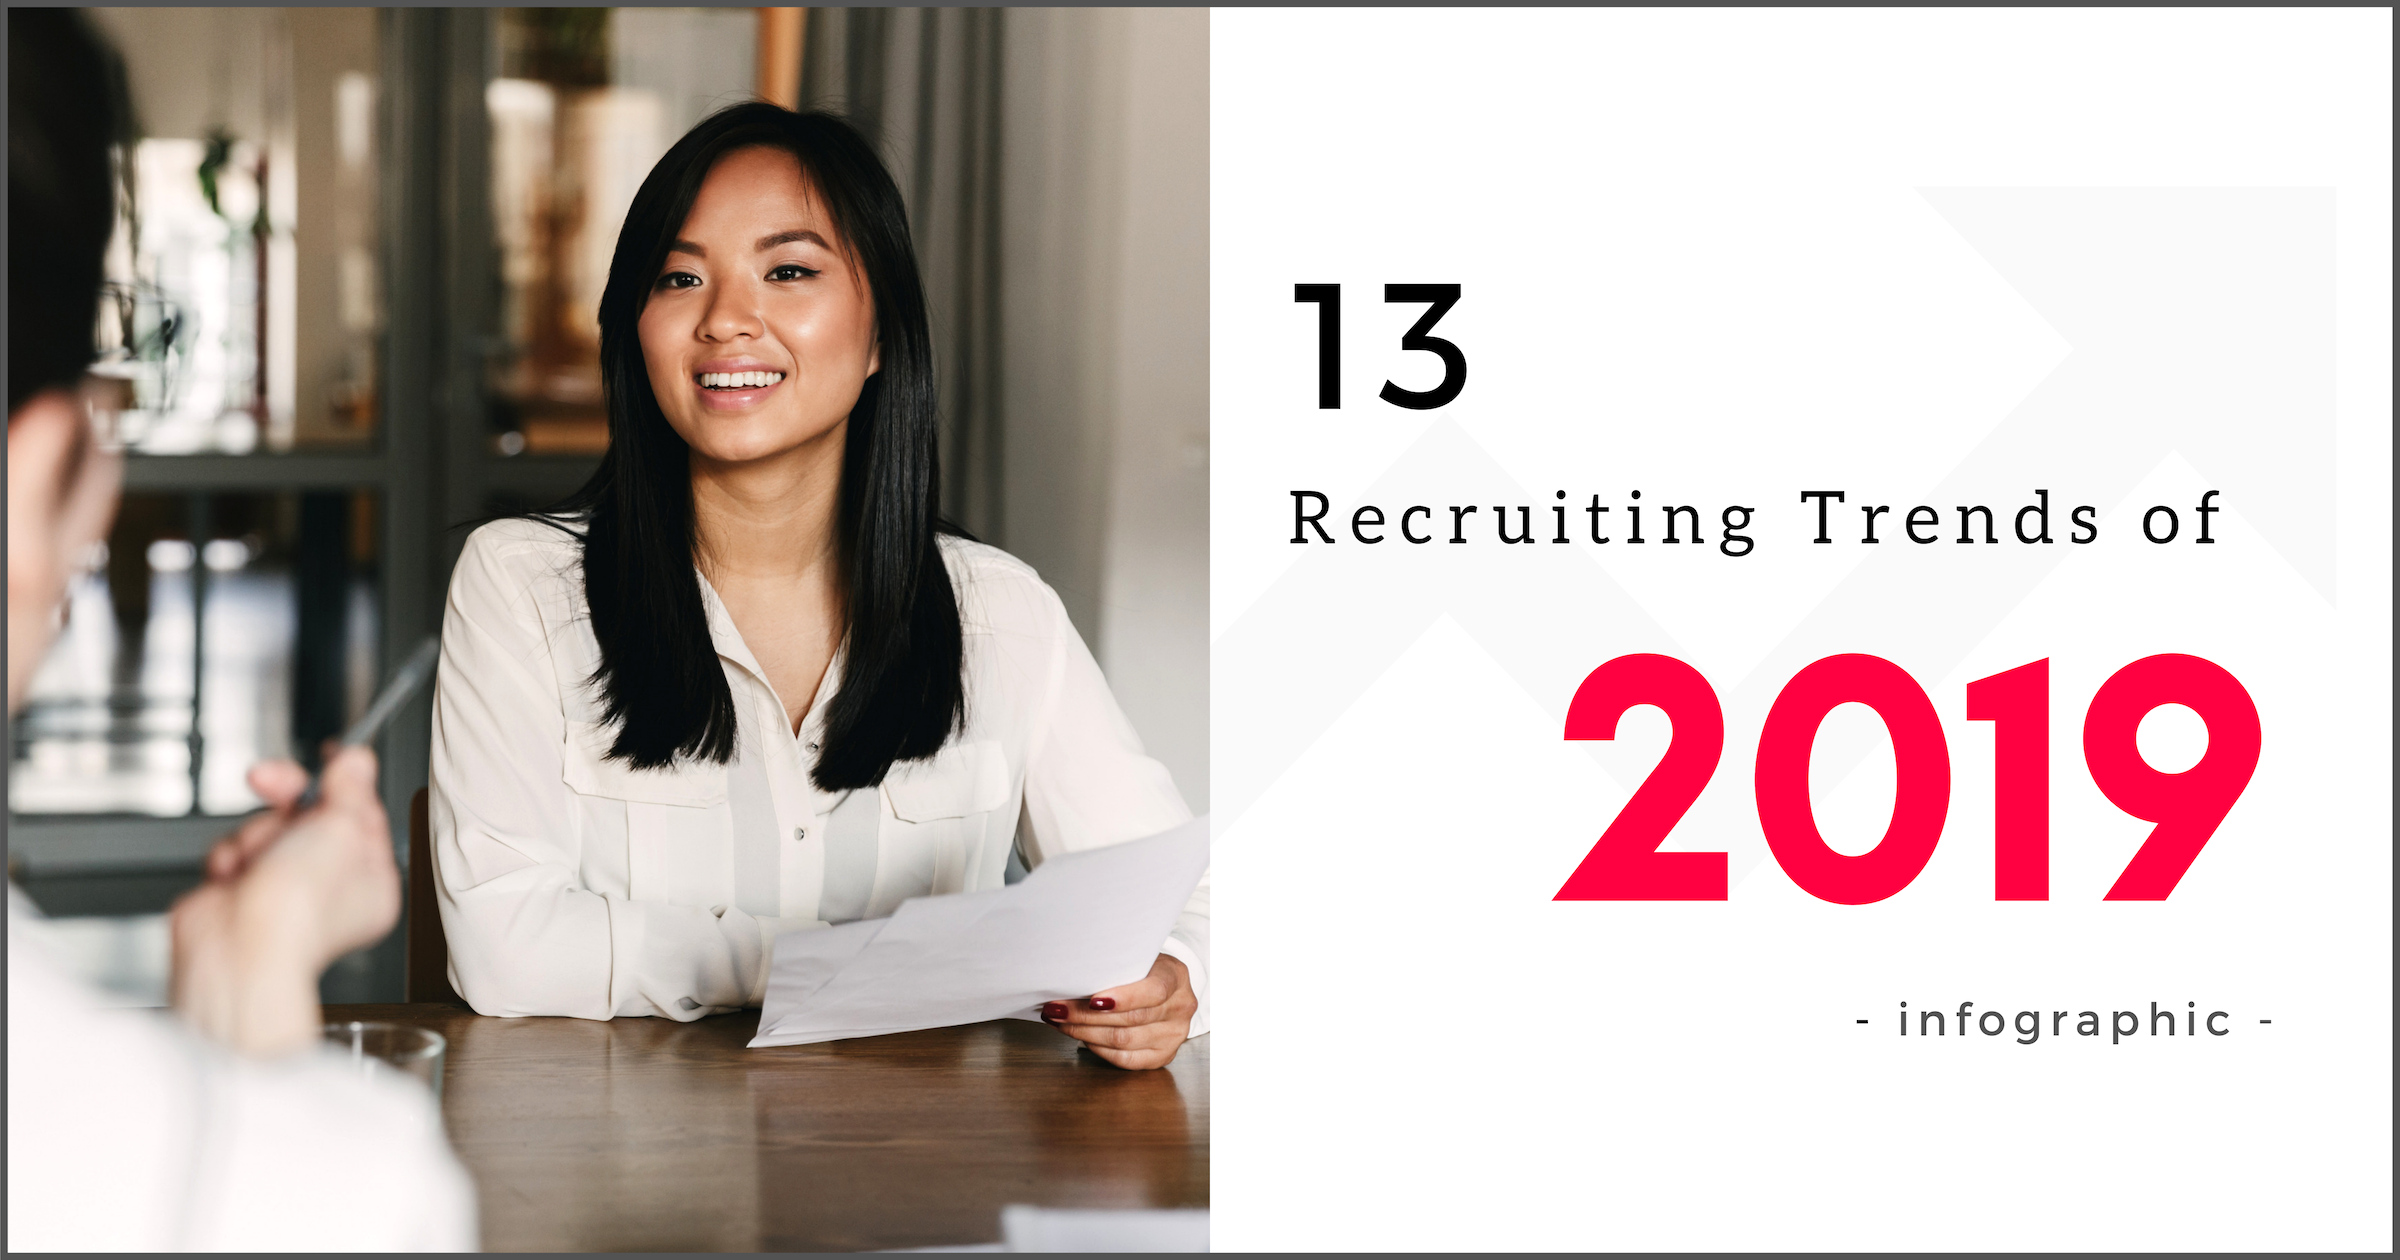 13 Top Recruiting Trends of 2019 [Infographic]